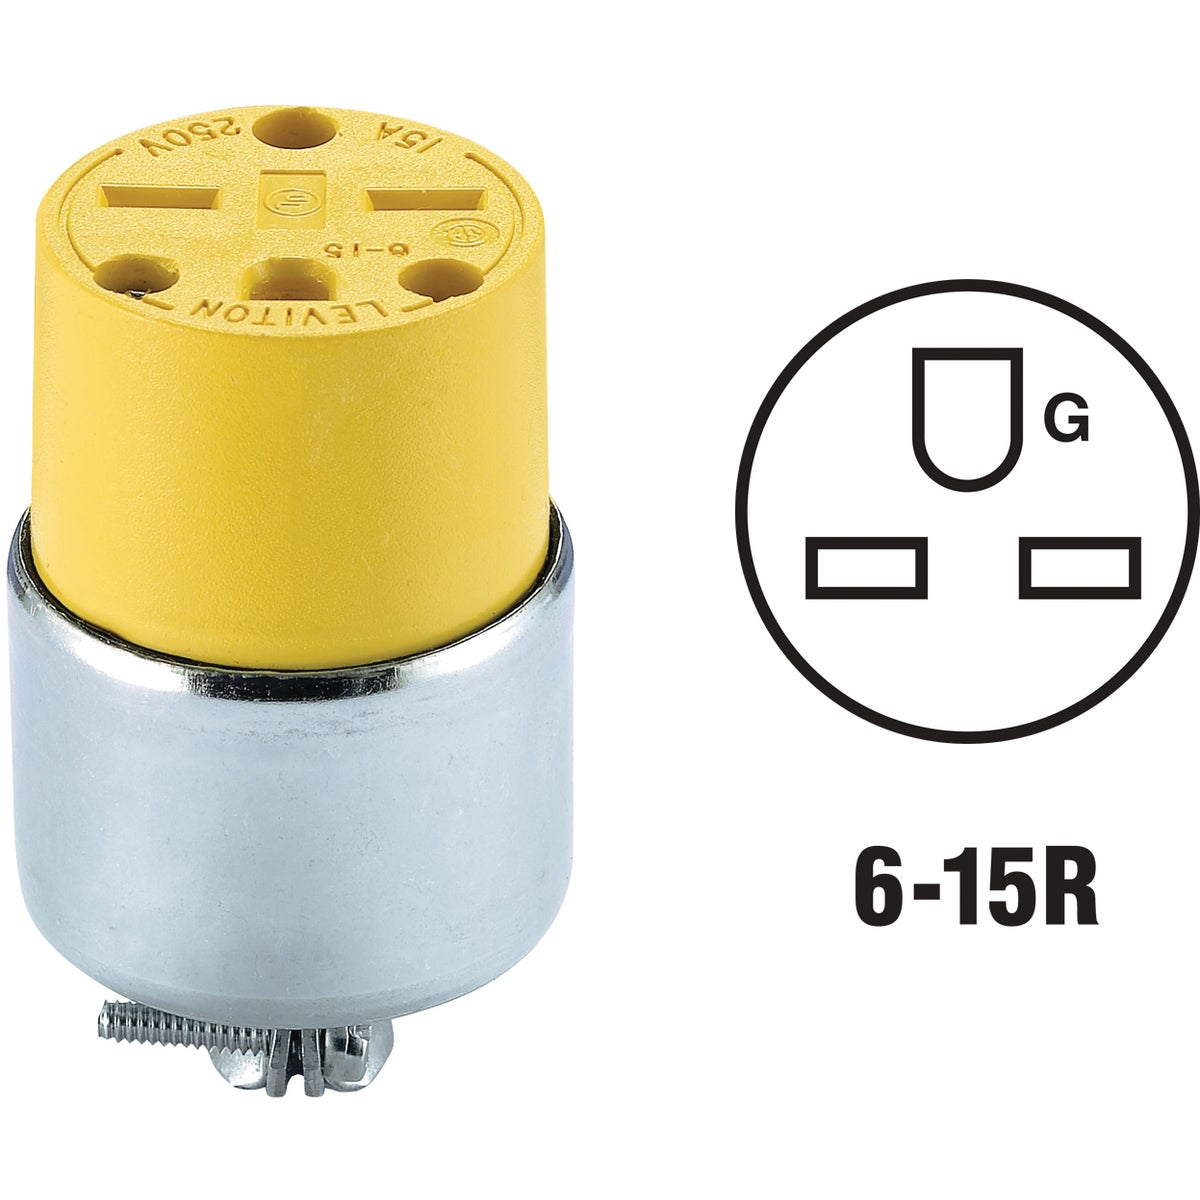 YEL ARMORED CONNECTOR - 615CA by Leviton Mfg Co